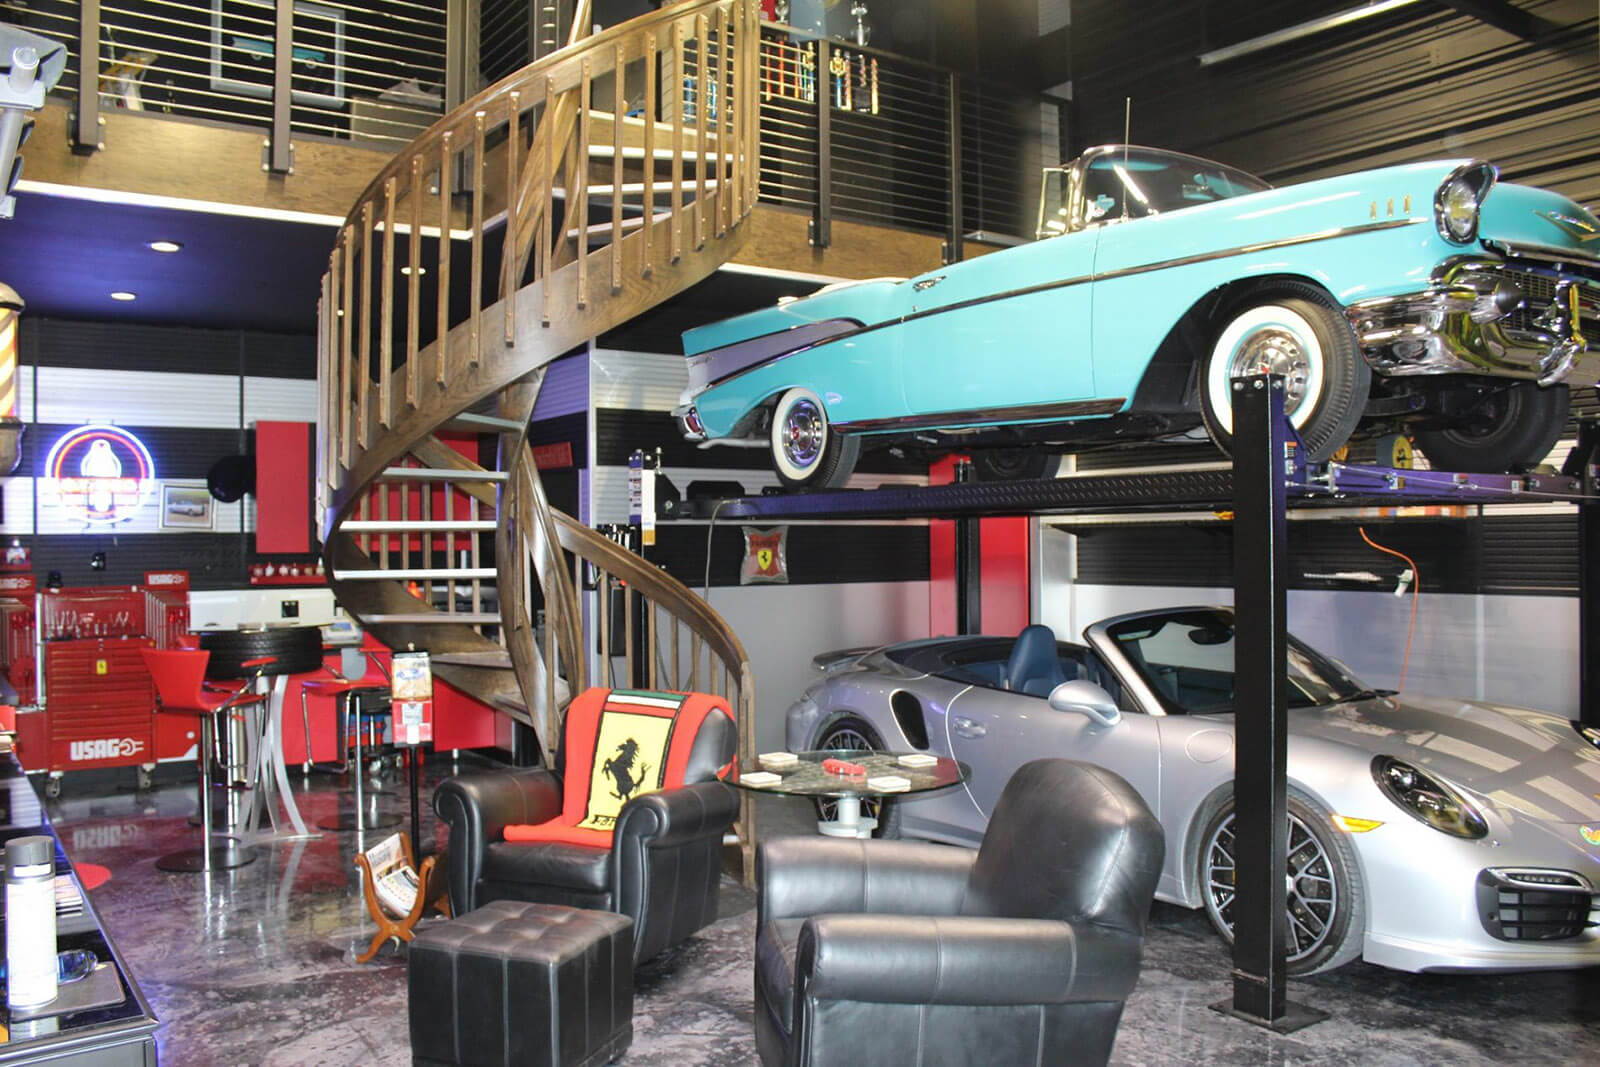 Unique And Unlike Any Other Facility Garages Of Texas Is The Garage Man Cave For All Your Toys